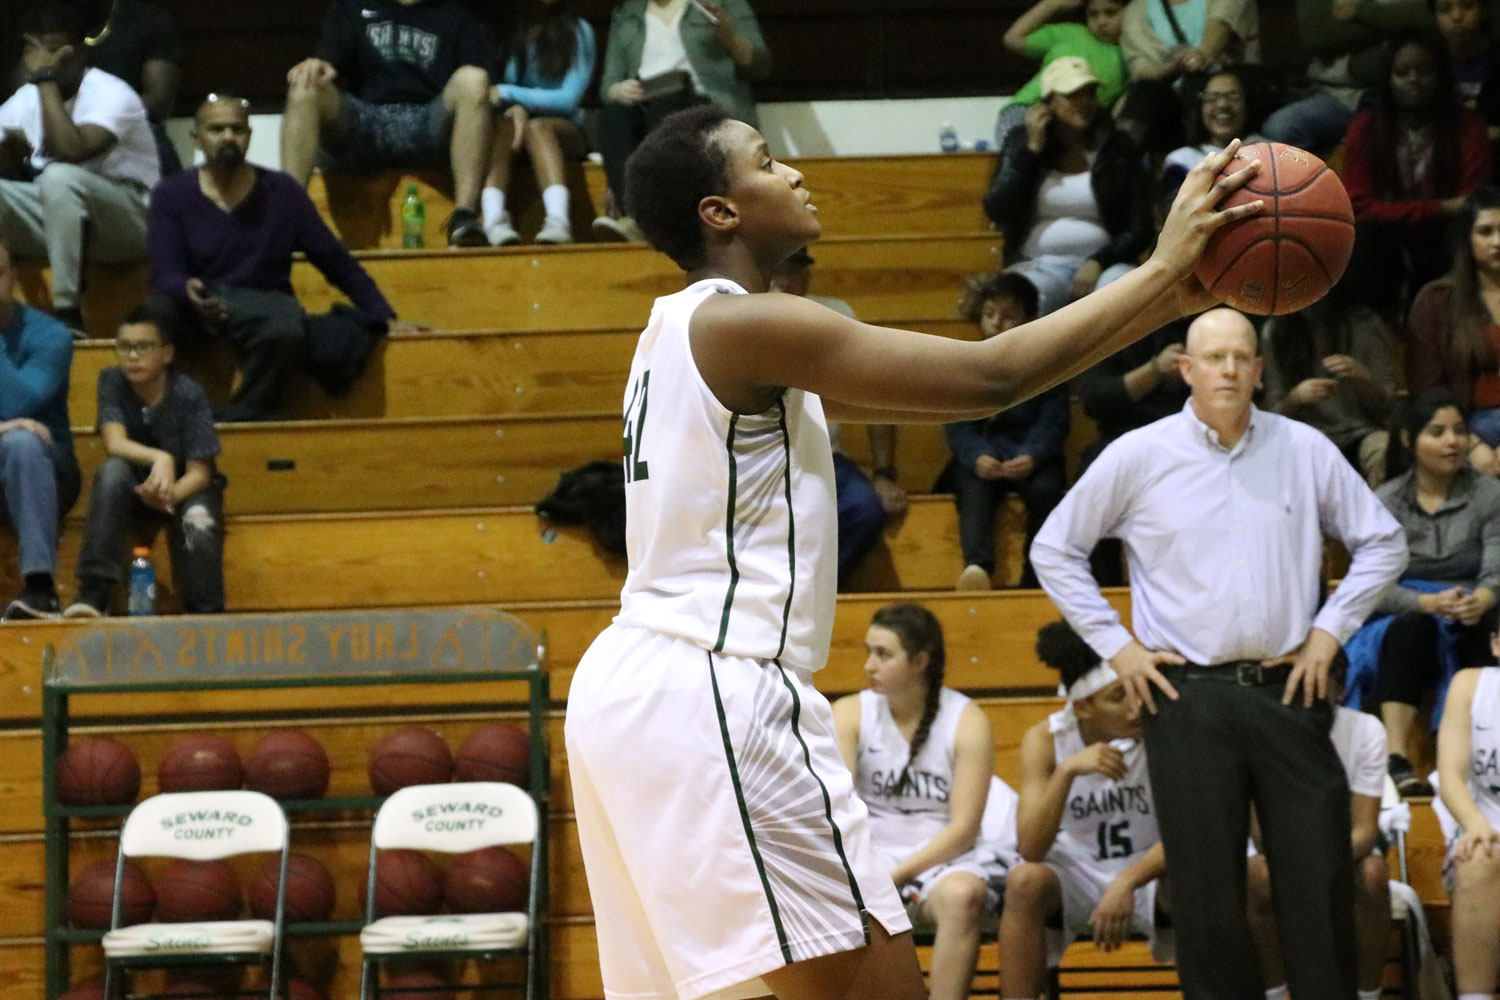 Freshman forward, Carla Covane, attempts a free throw. (File Photo)